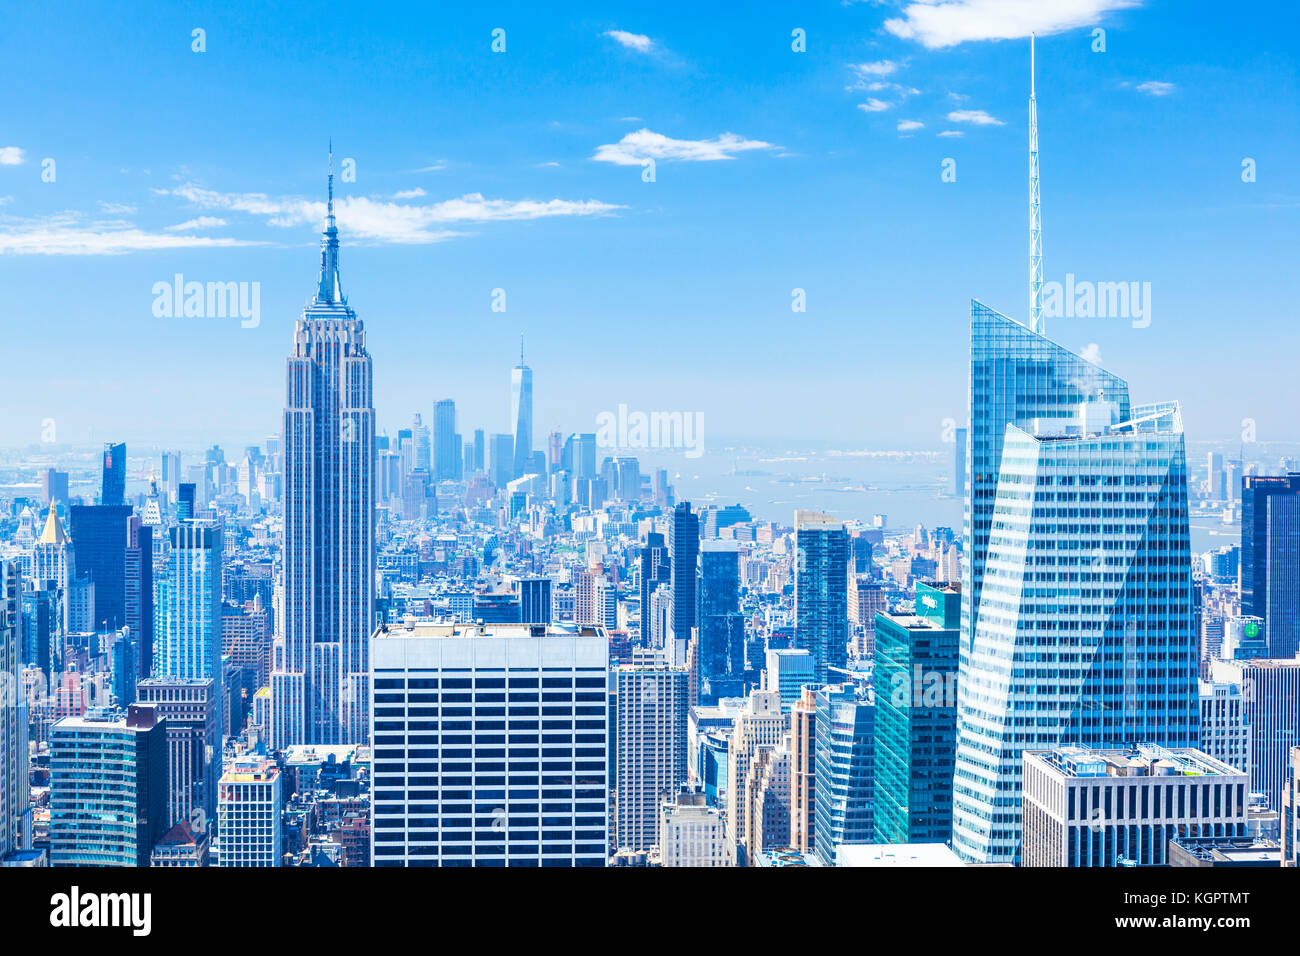 Manhattan skyline, New York Skyline, Empire State Building, New York City, États-Unis d'Amérique, Photo Stock